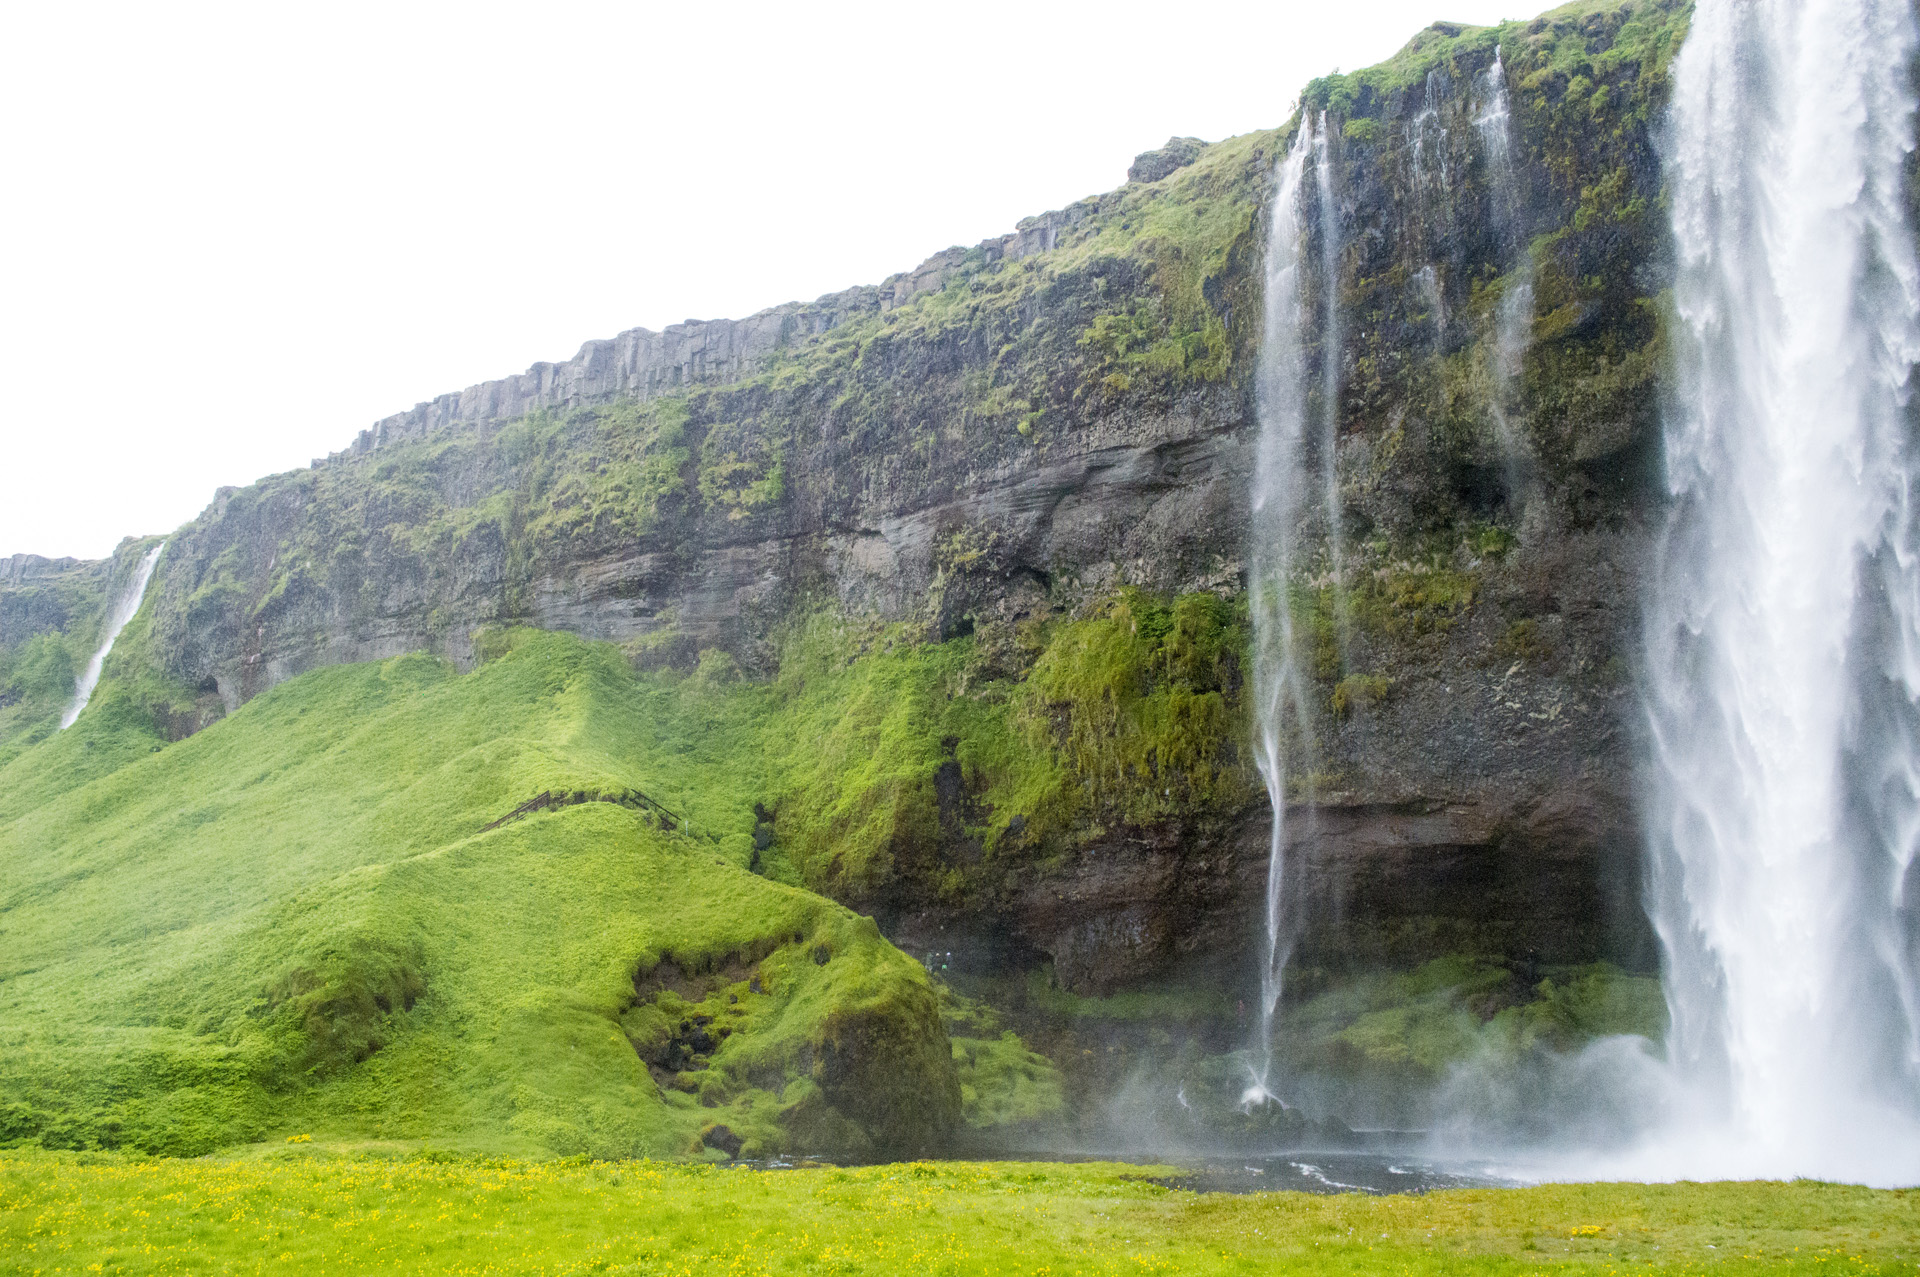 Photos: Seljalandsfoss and Hjálparfoss